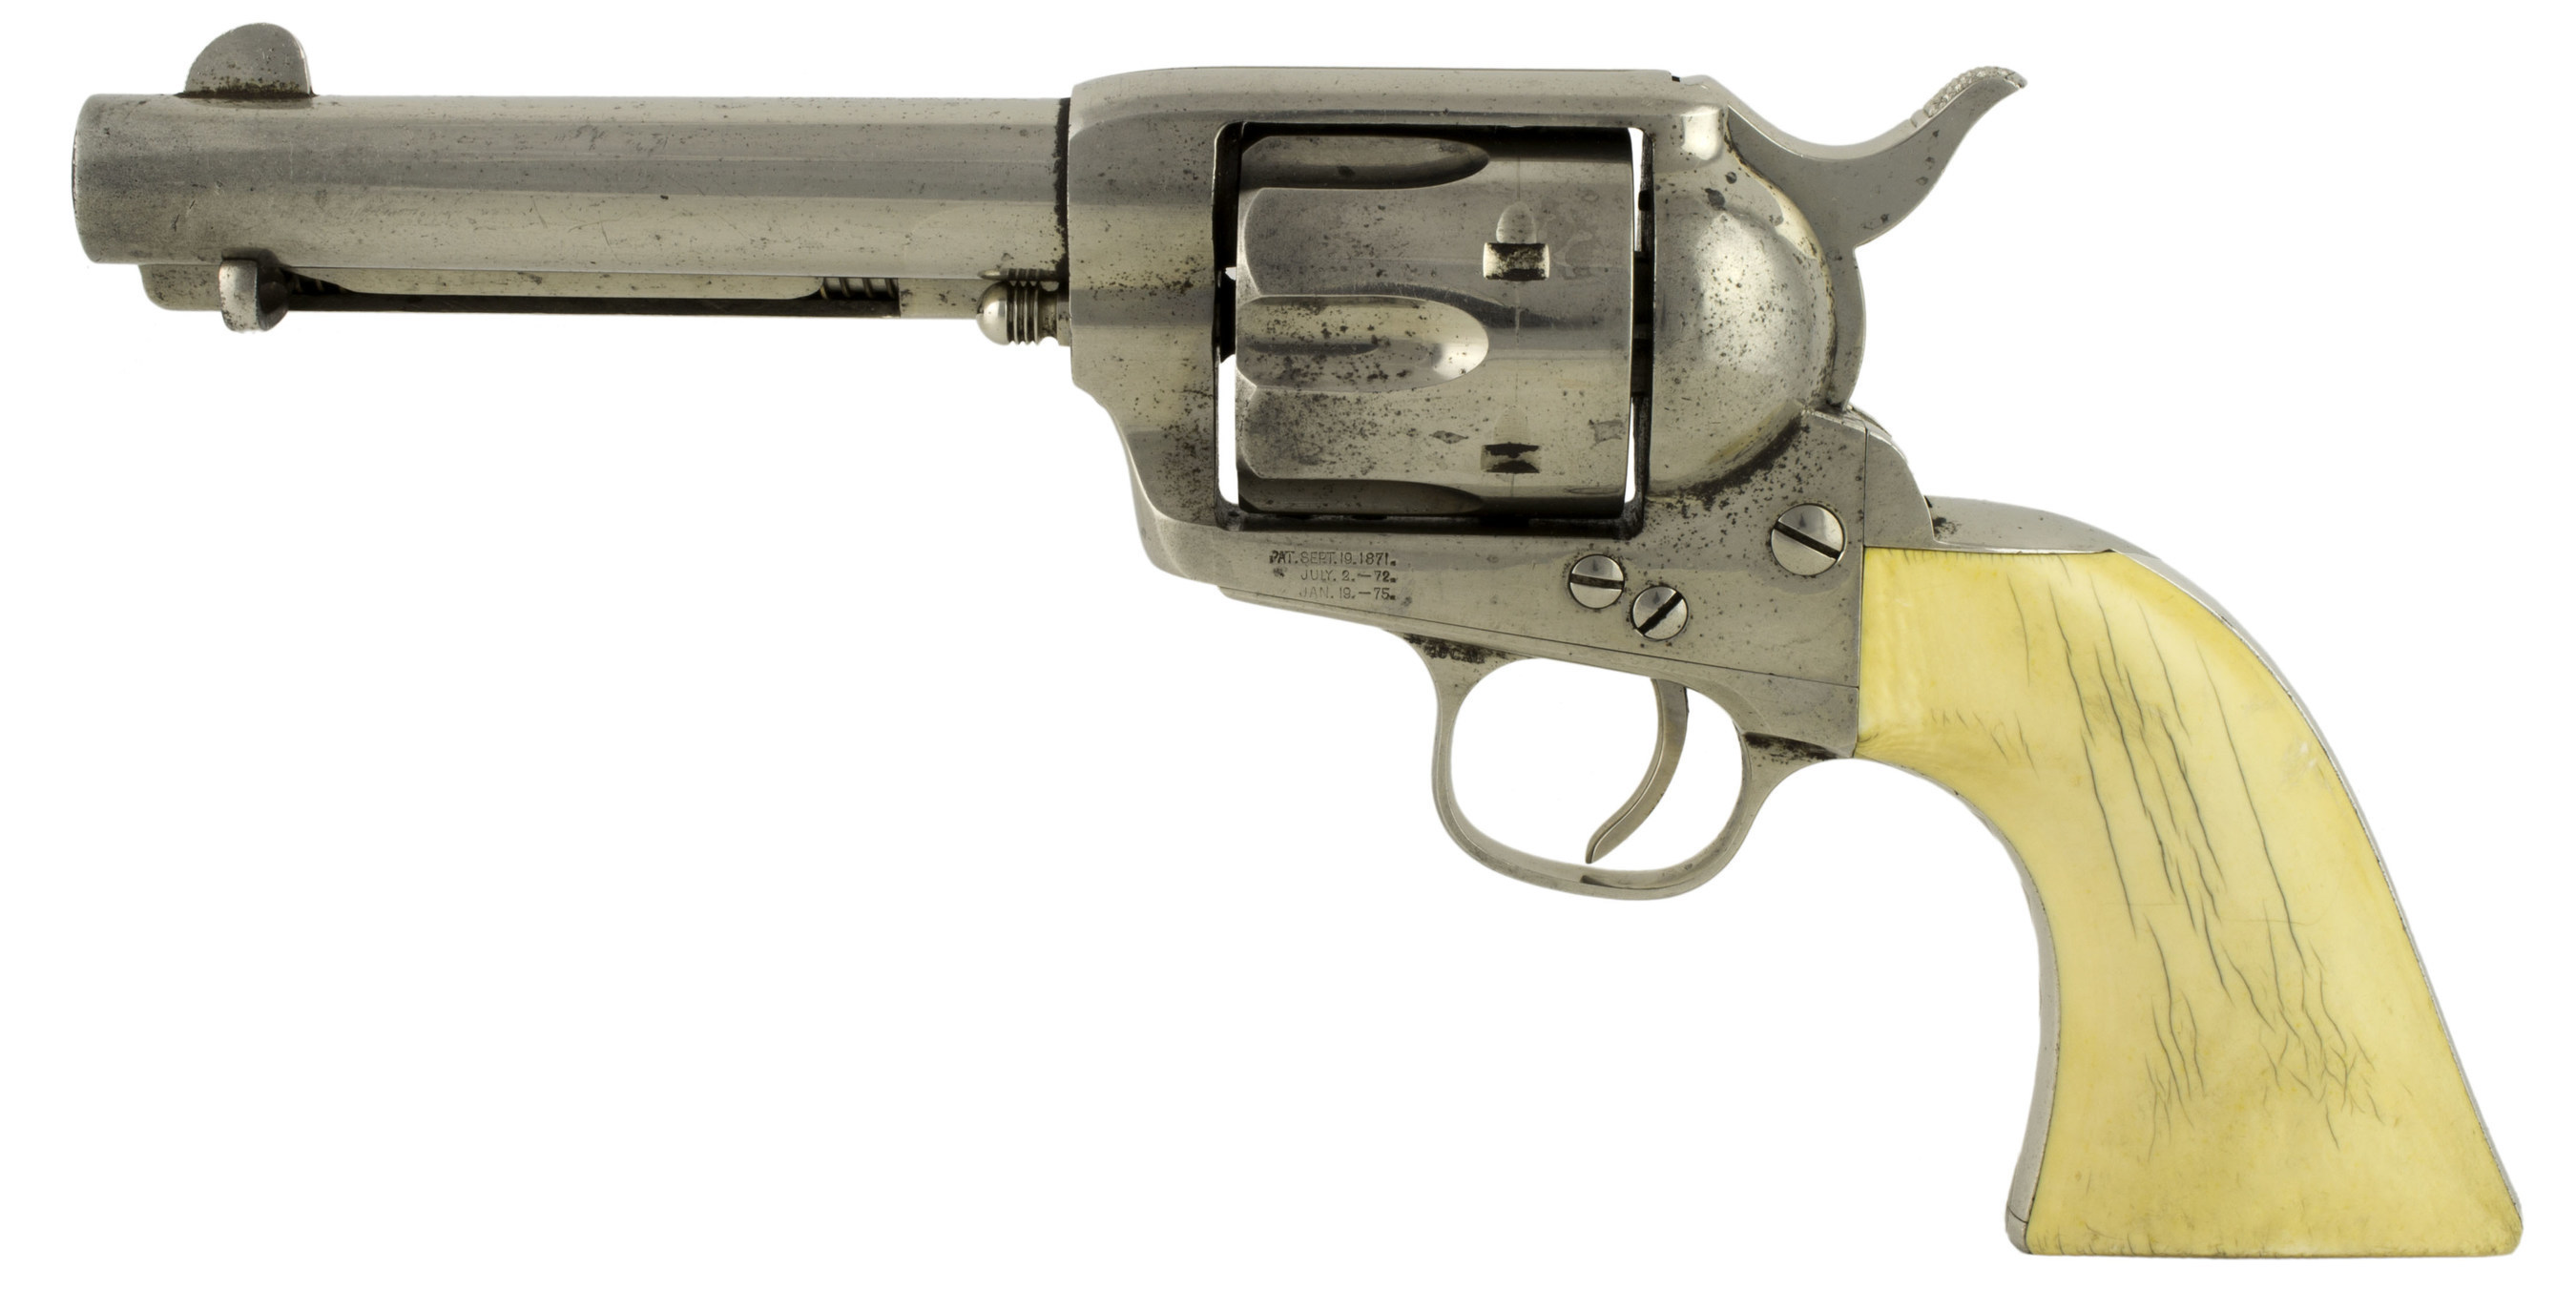 Abraham Lincoln's signed photograph, Bat Masterson's 1882 Colt revolver are among items to be auctioned July 30 & Aug. 2